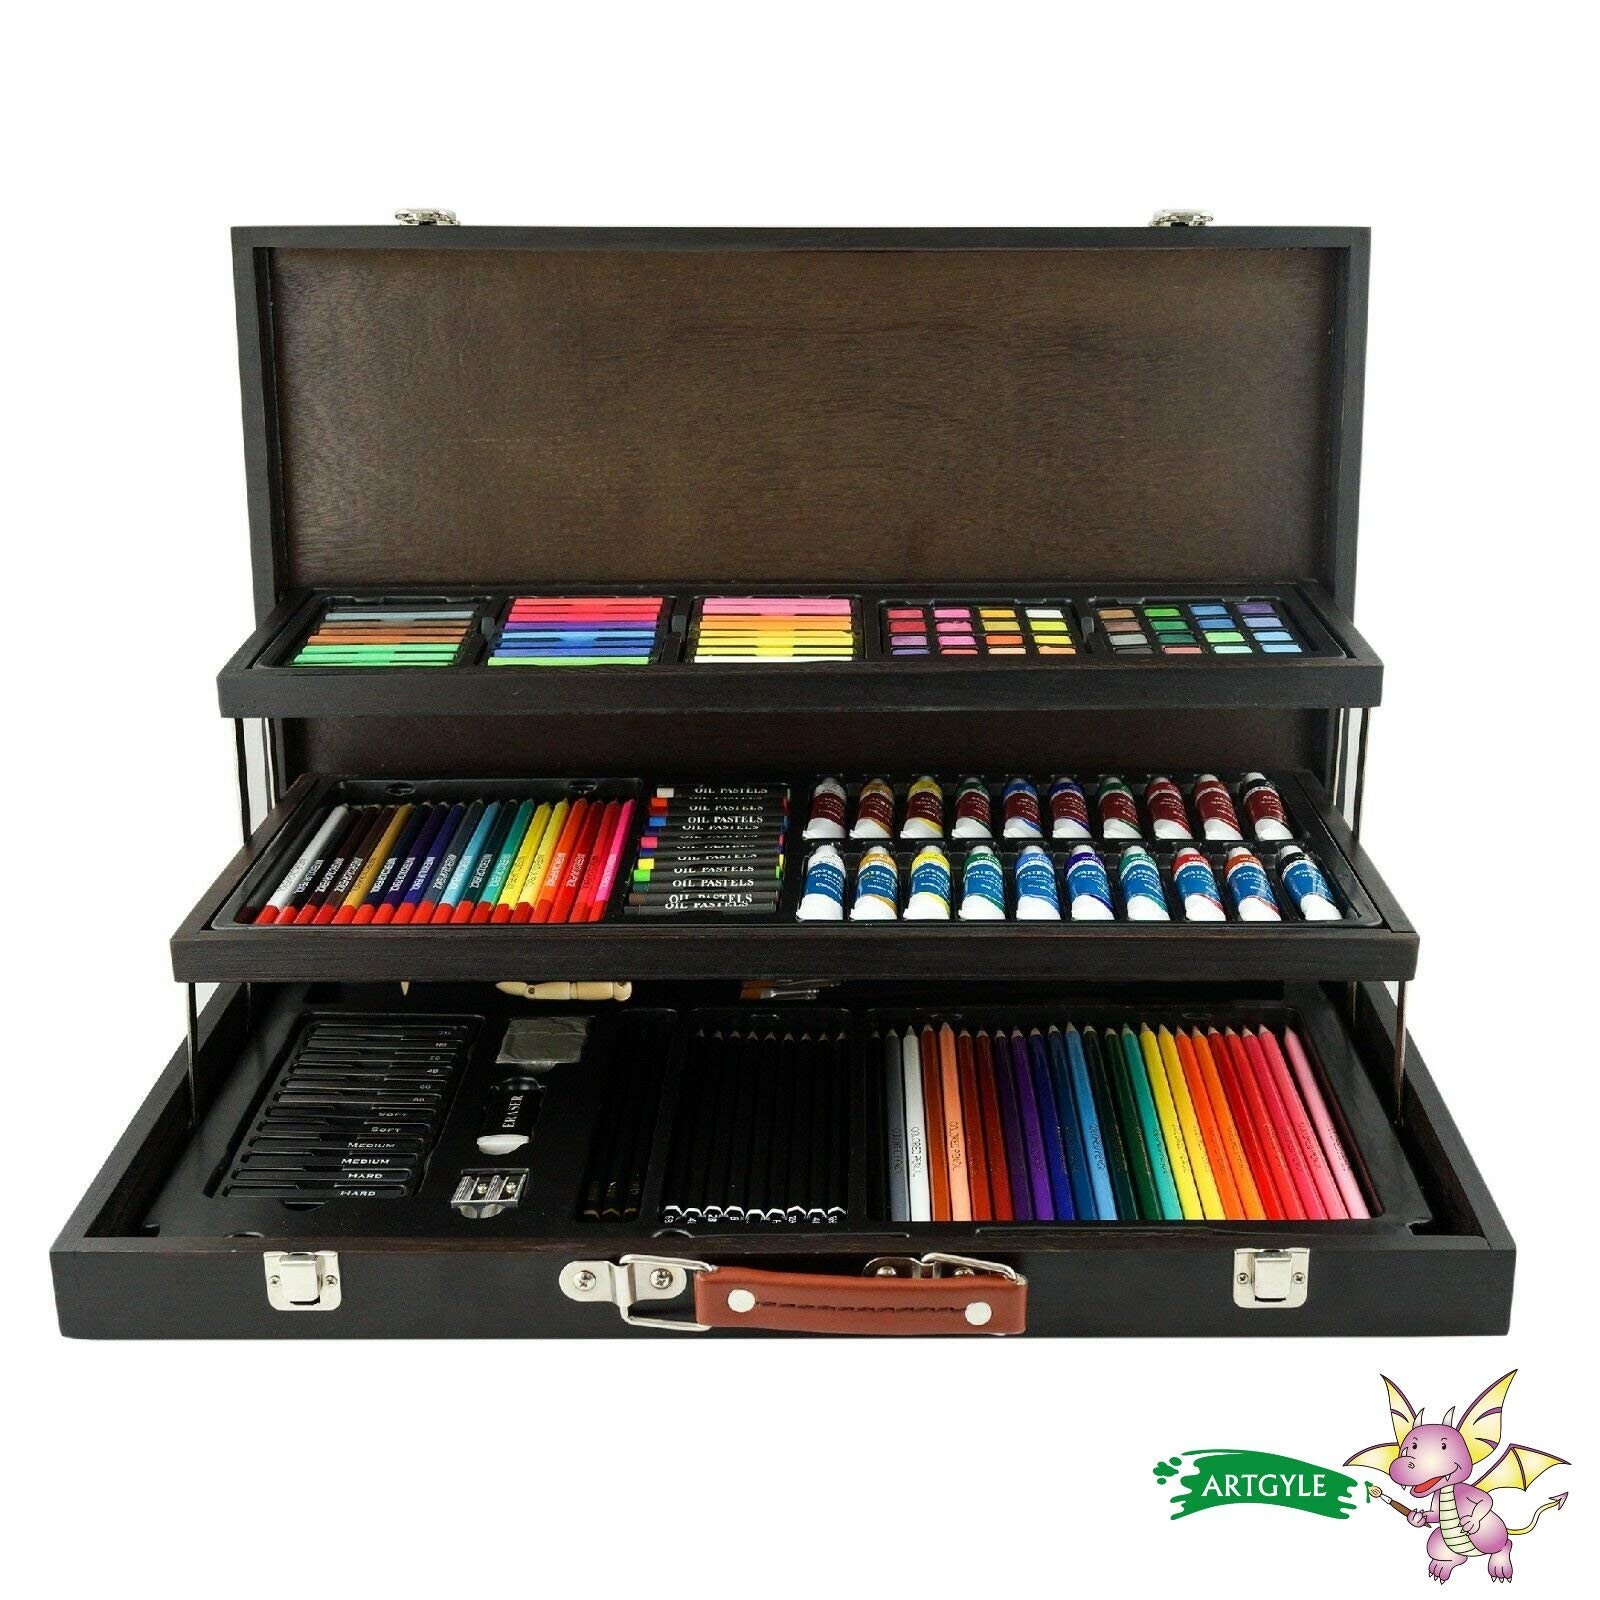 ARTGYLE 180 Piece Mixed Media Art Set in Wooden Box, with with Fundamental Artist Material